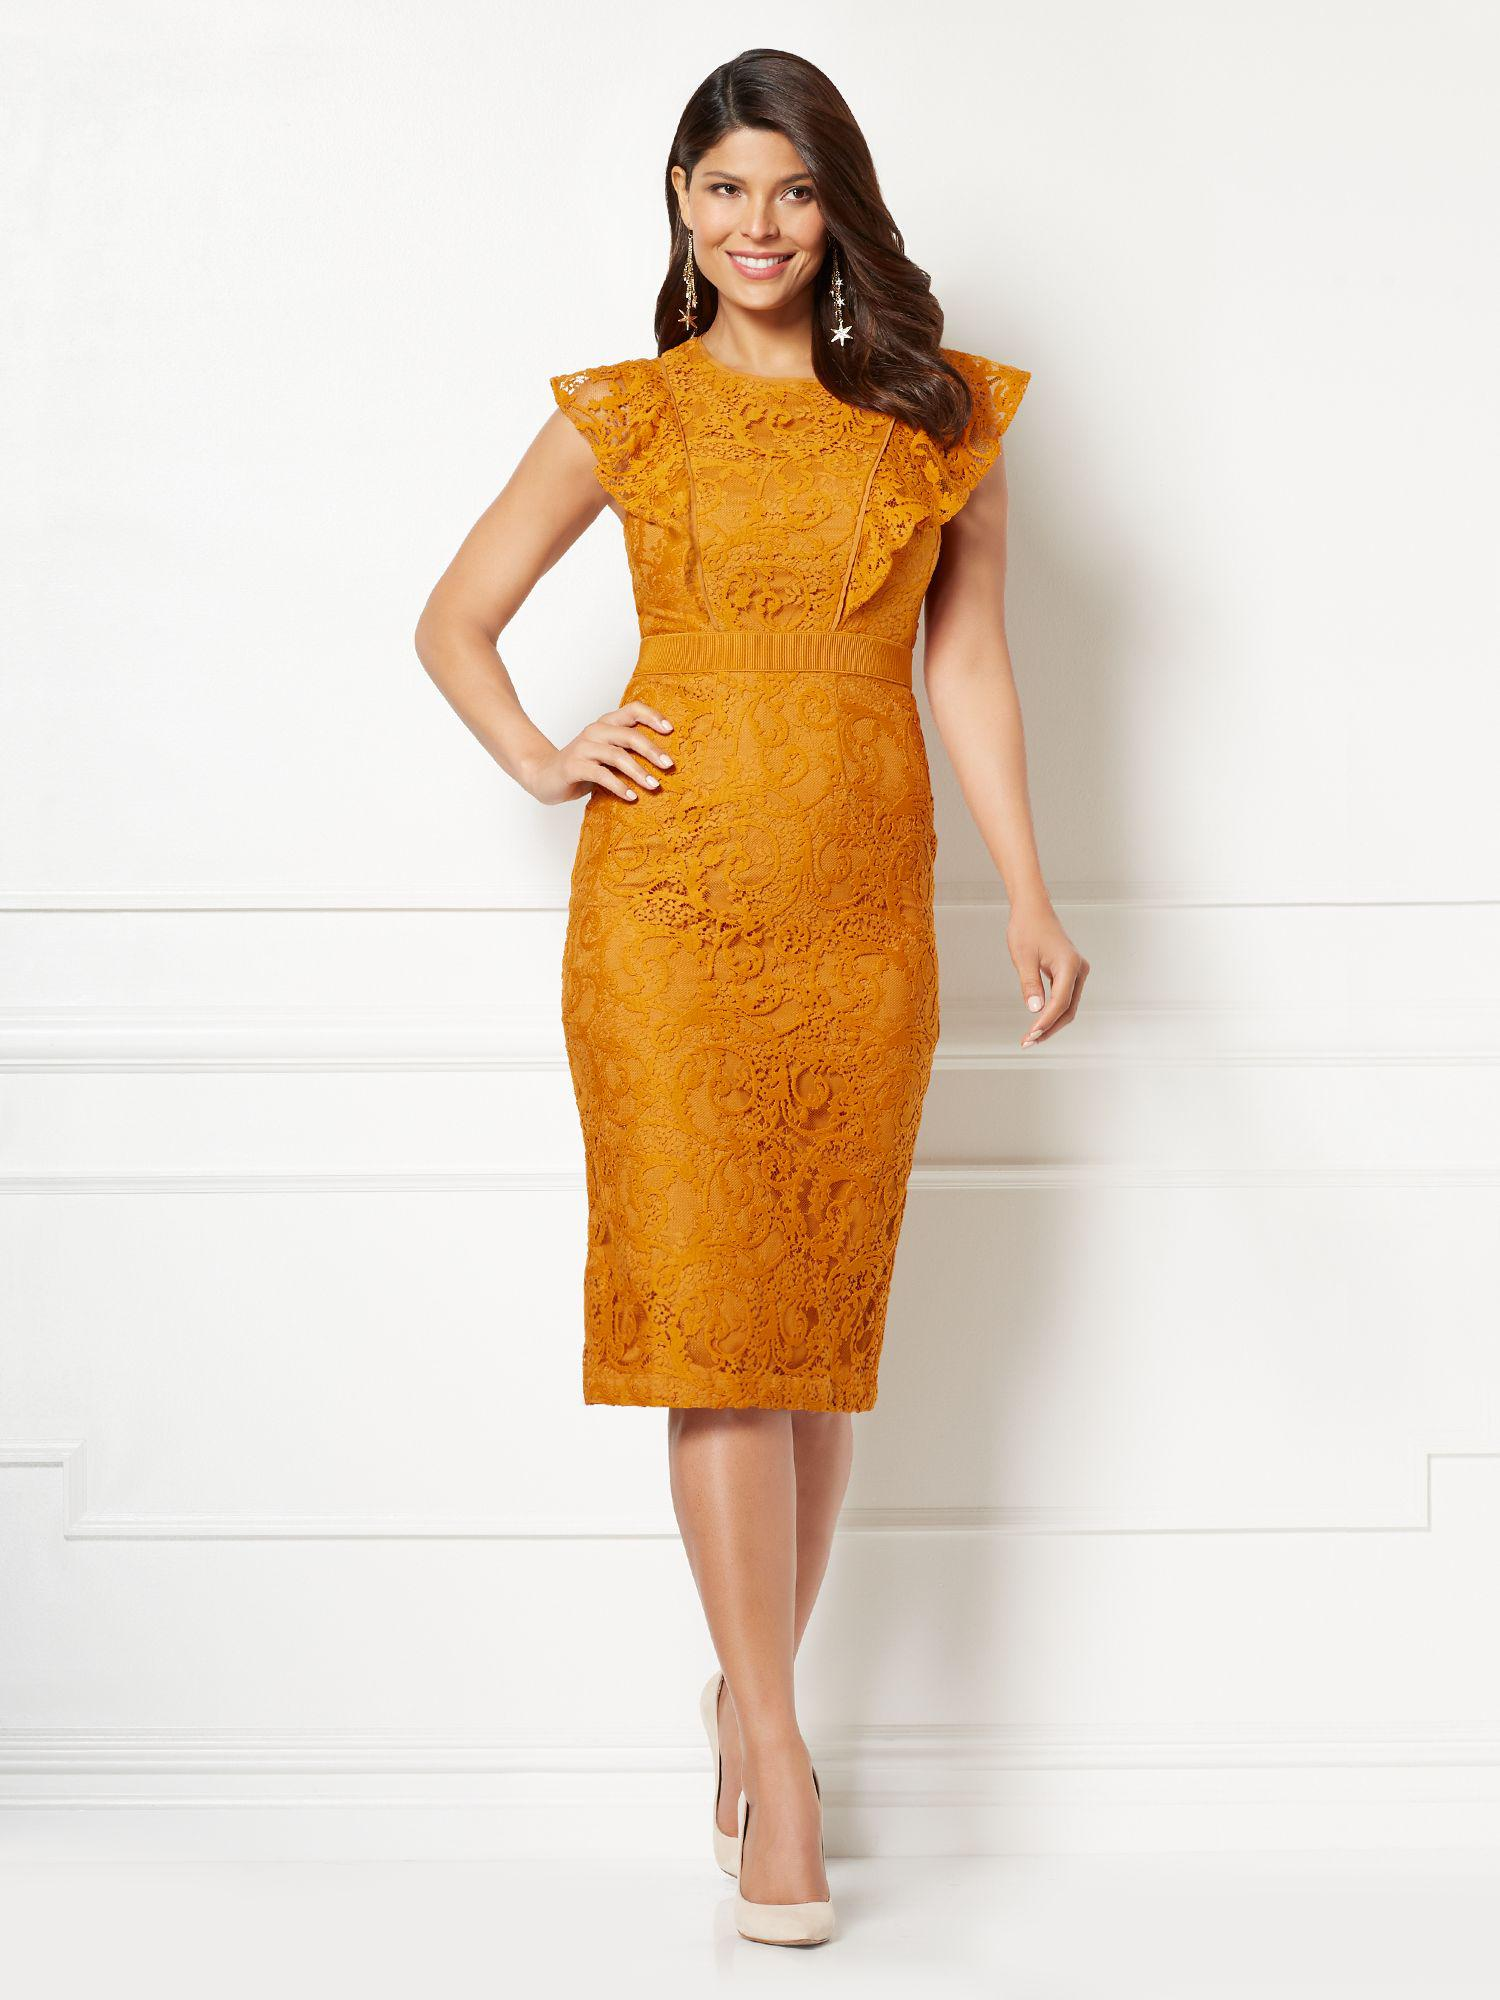 7ad3f99b Gallery. Previously sold at: New York & Company · Women's Orange Dresses